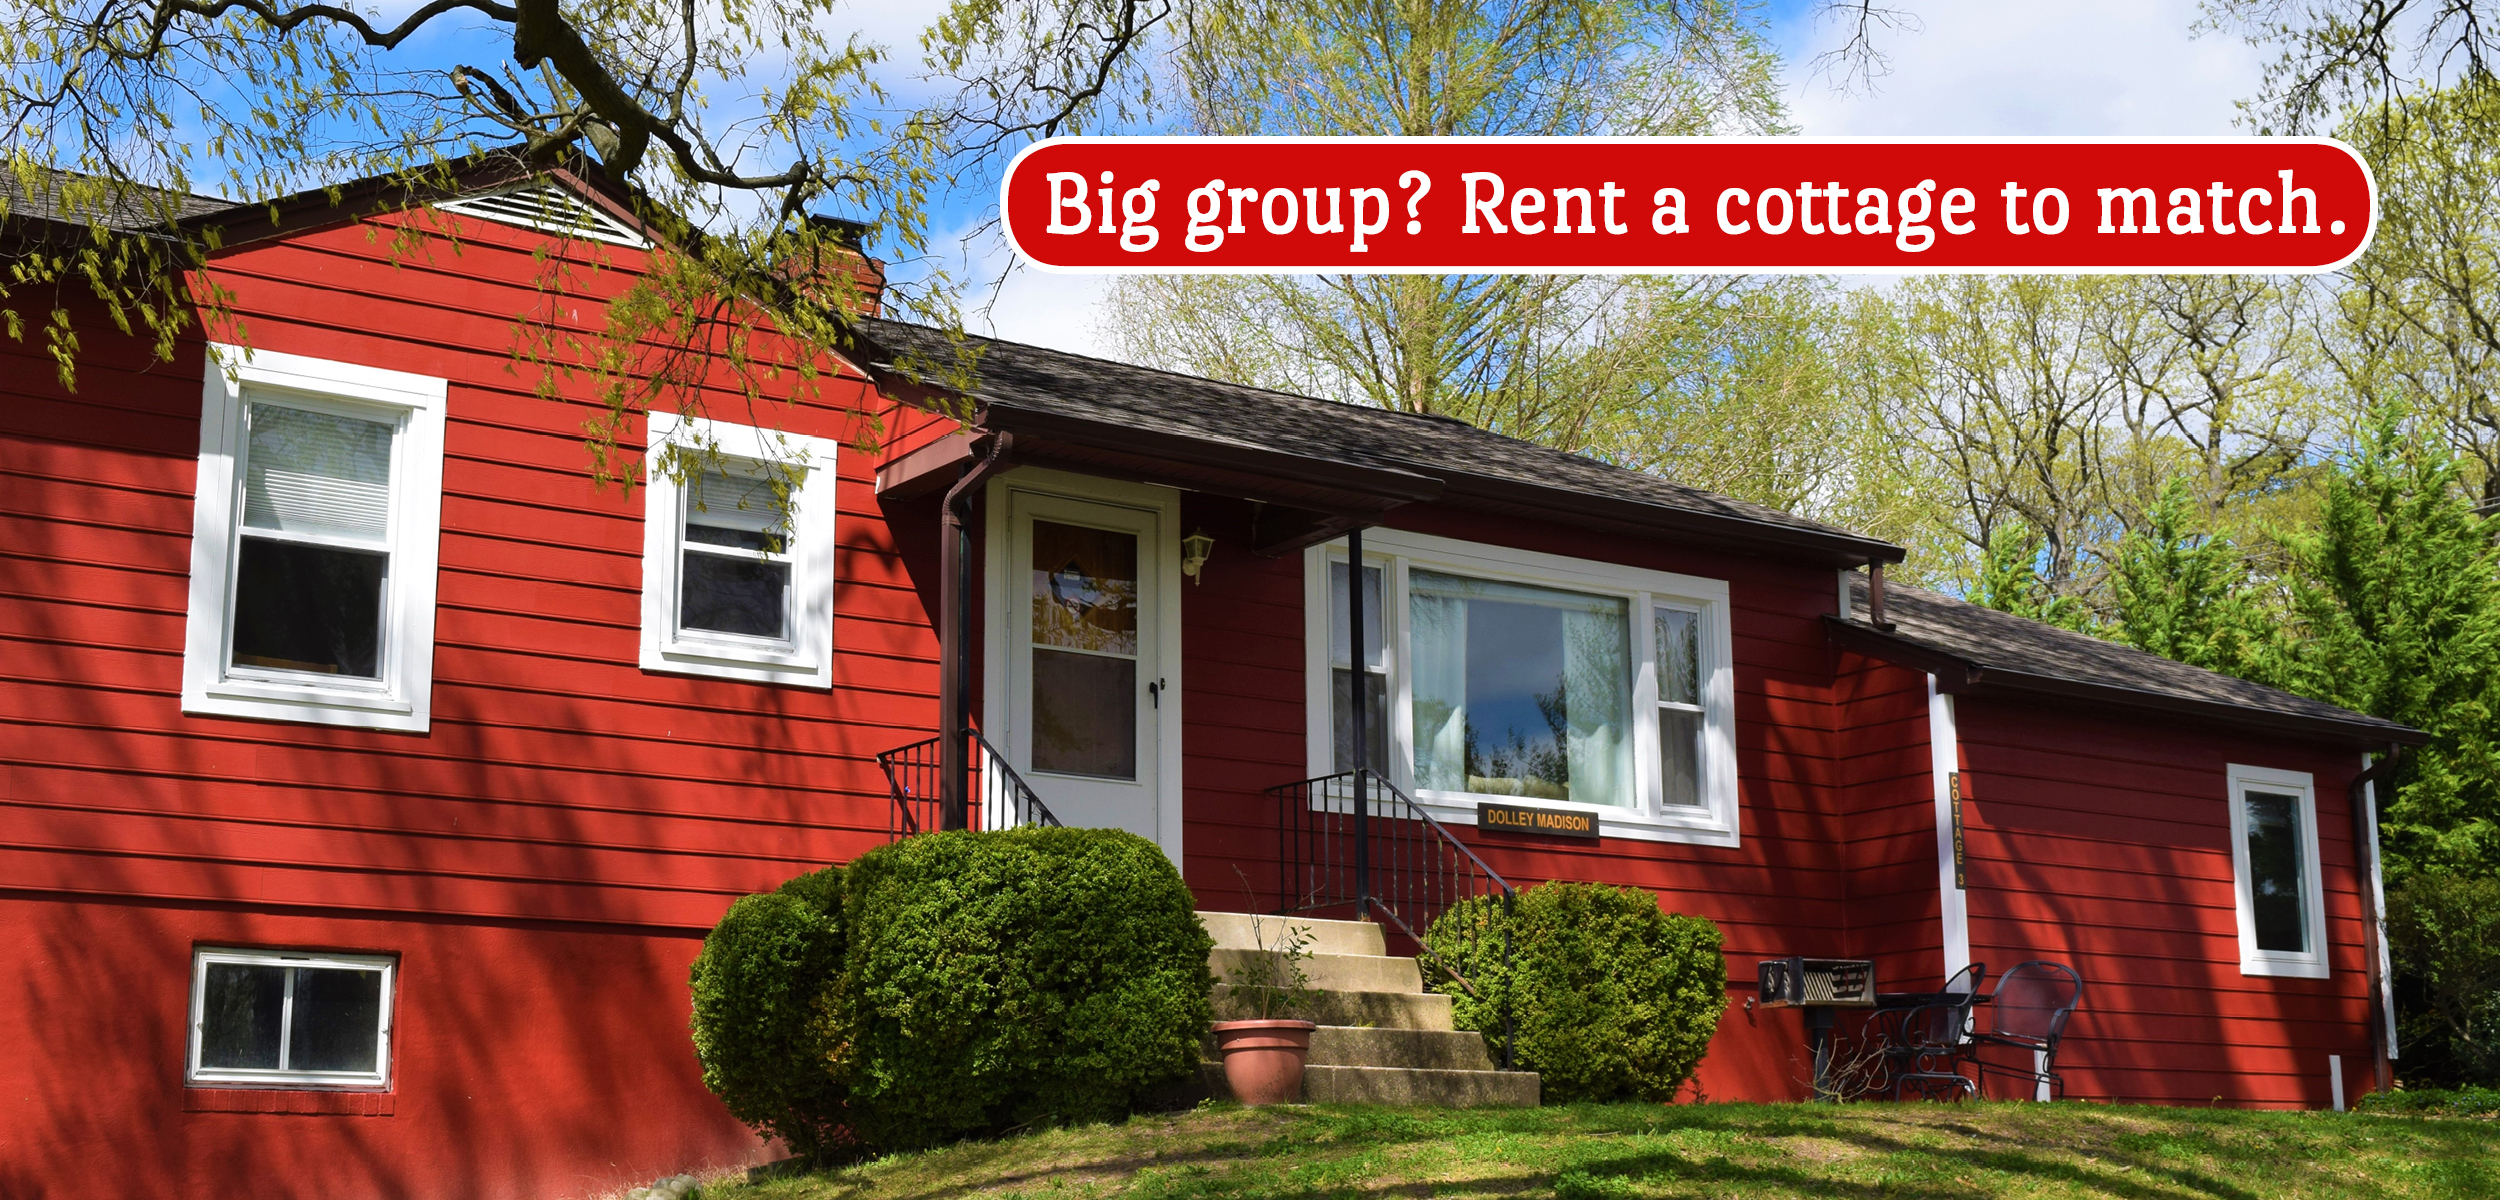 Big group? Rent a cottage to match. Red house with white trim.